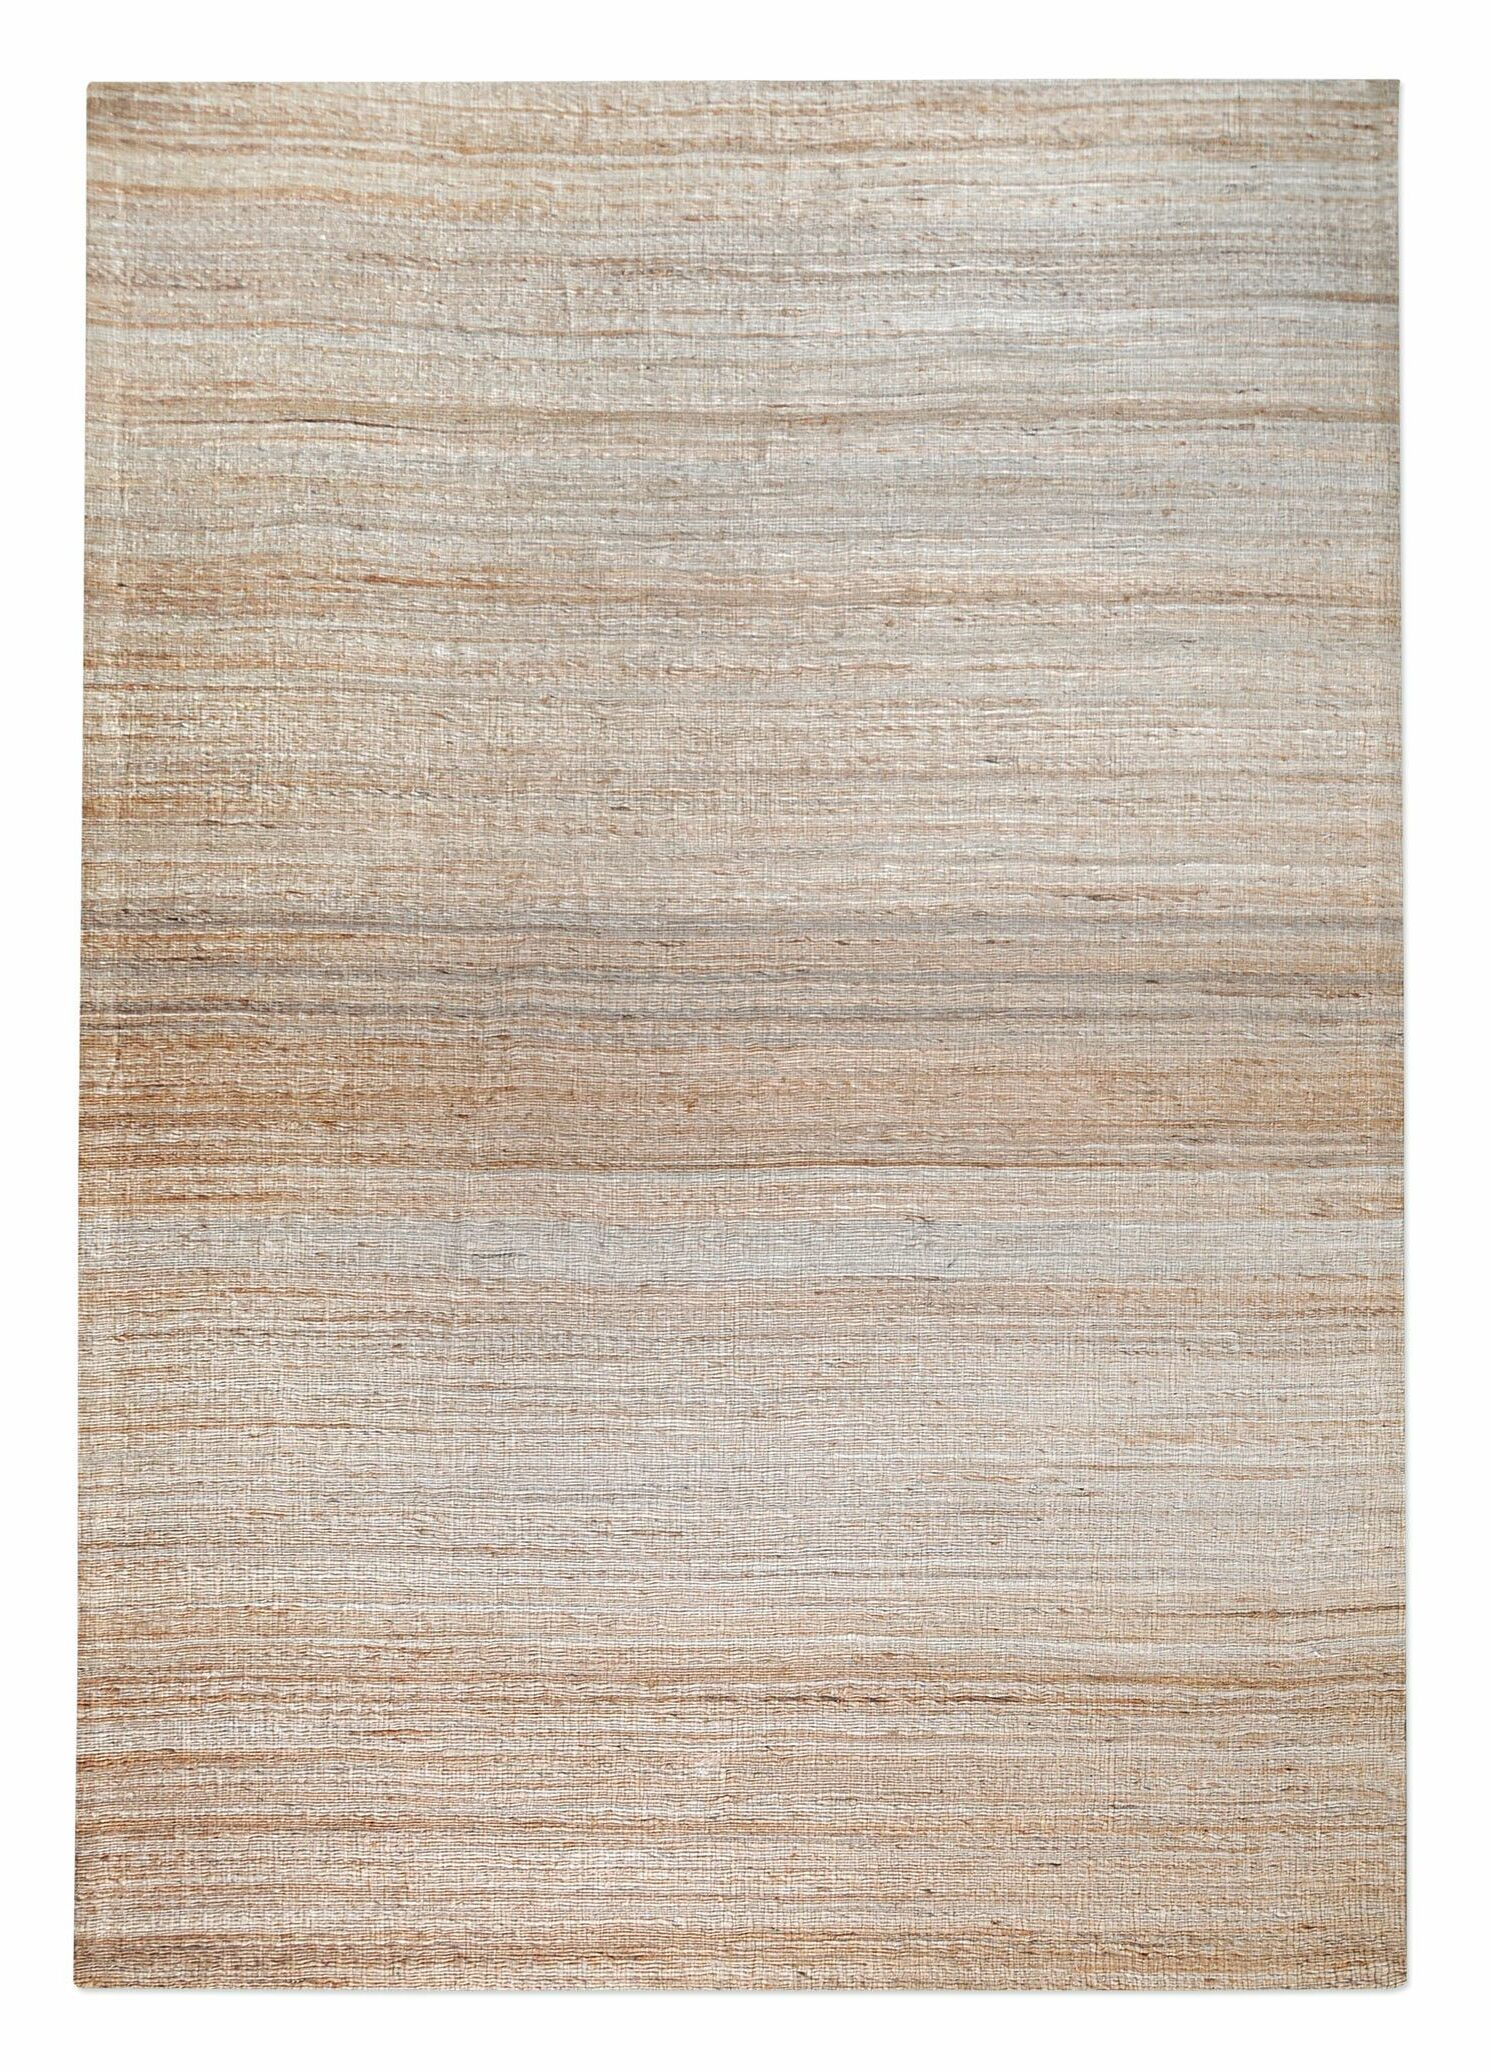 Shafter Hand-Woven Ecru Area Rug Rug Size: 5' x 8'